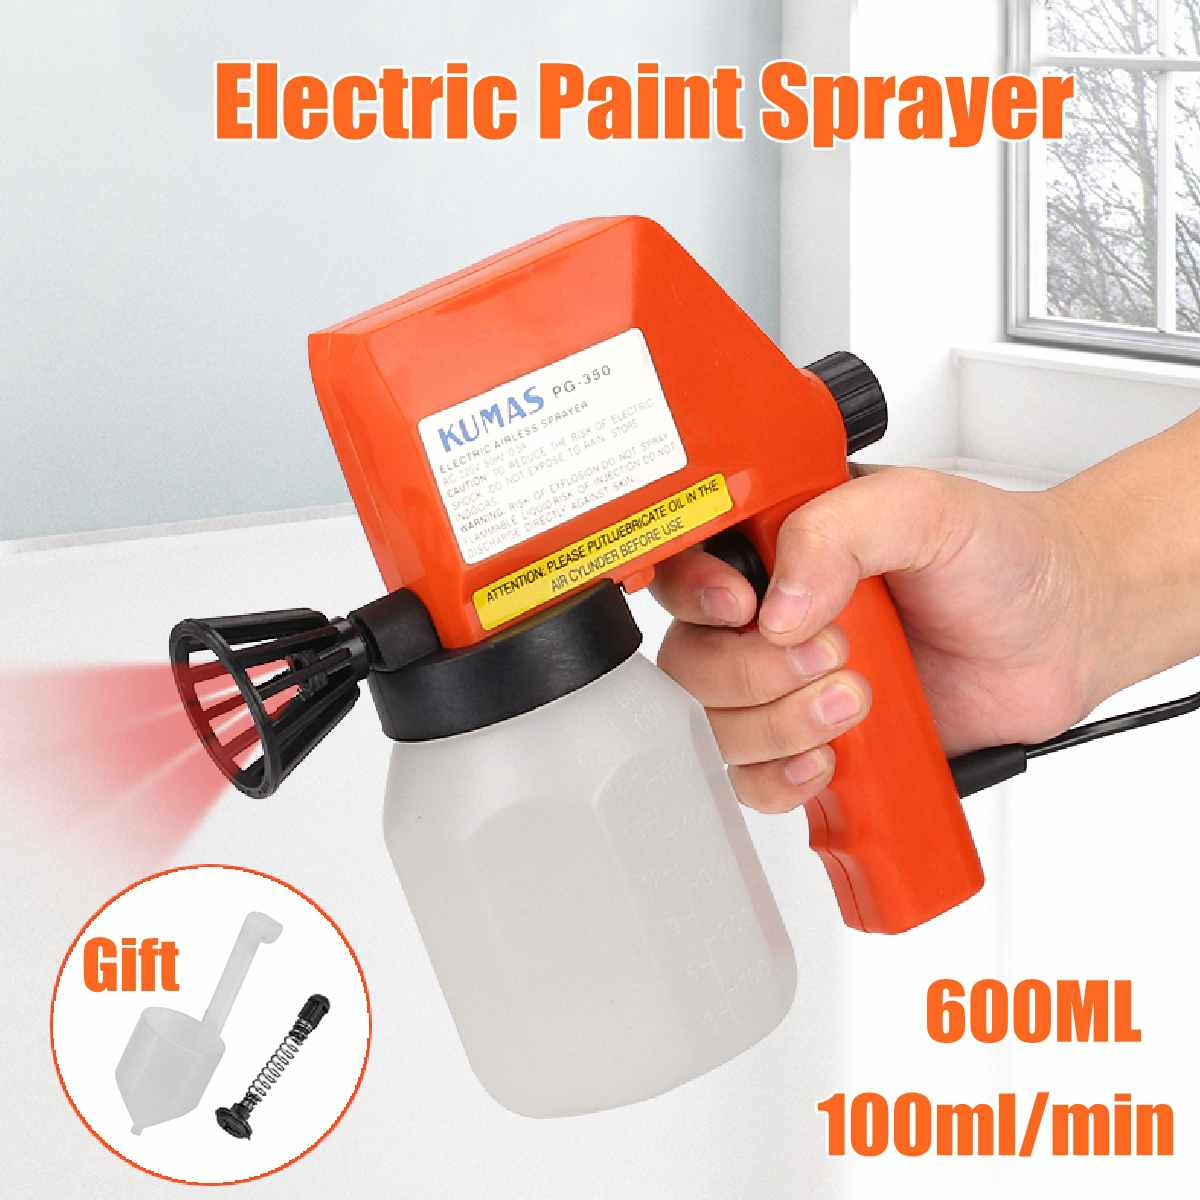 220V Large Capacity Electric Paint Sprayer Airless Hand Held Spray Gun For Painting Houses/Garages/Decks/Furniture